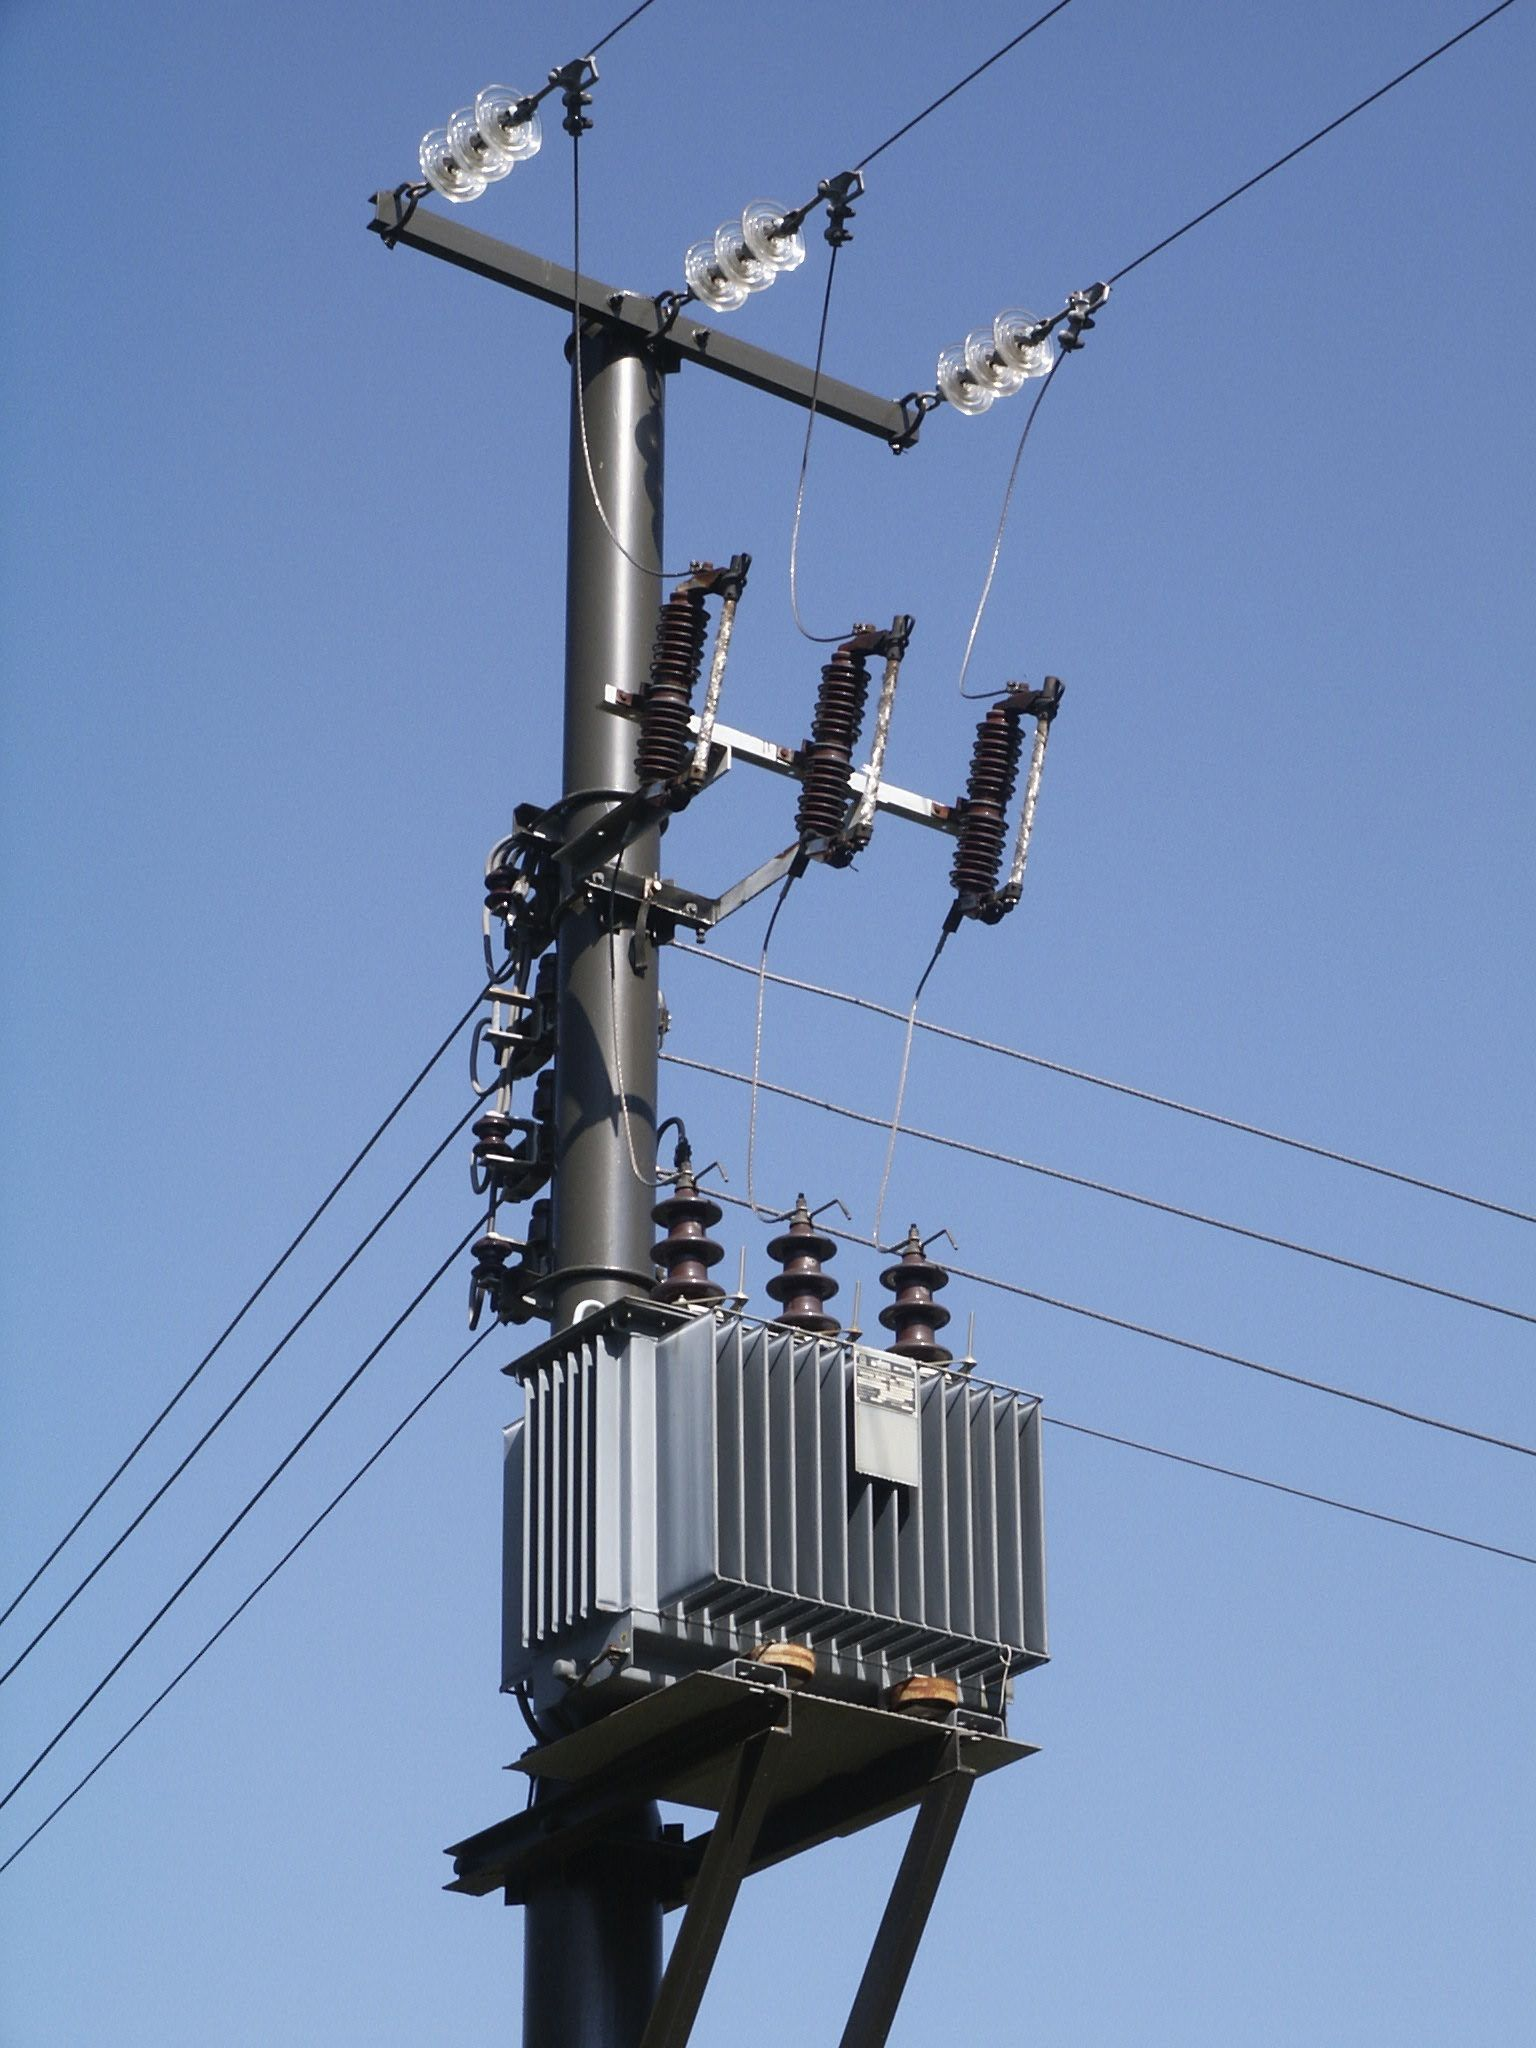 American Auto Wire Wiring Diagram Pole Mounted Substation Which Can Be Either Used With A